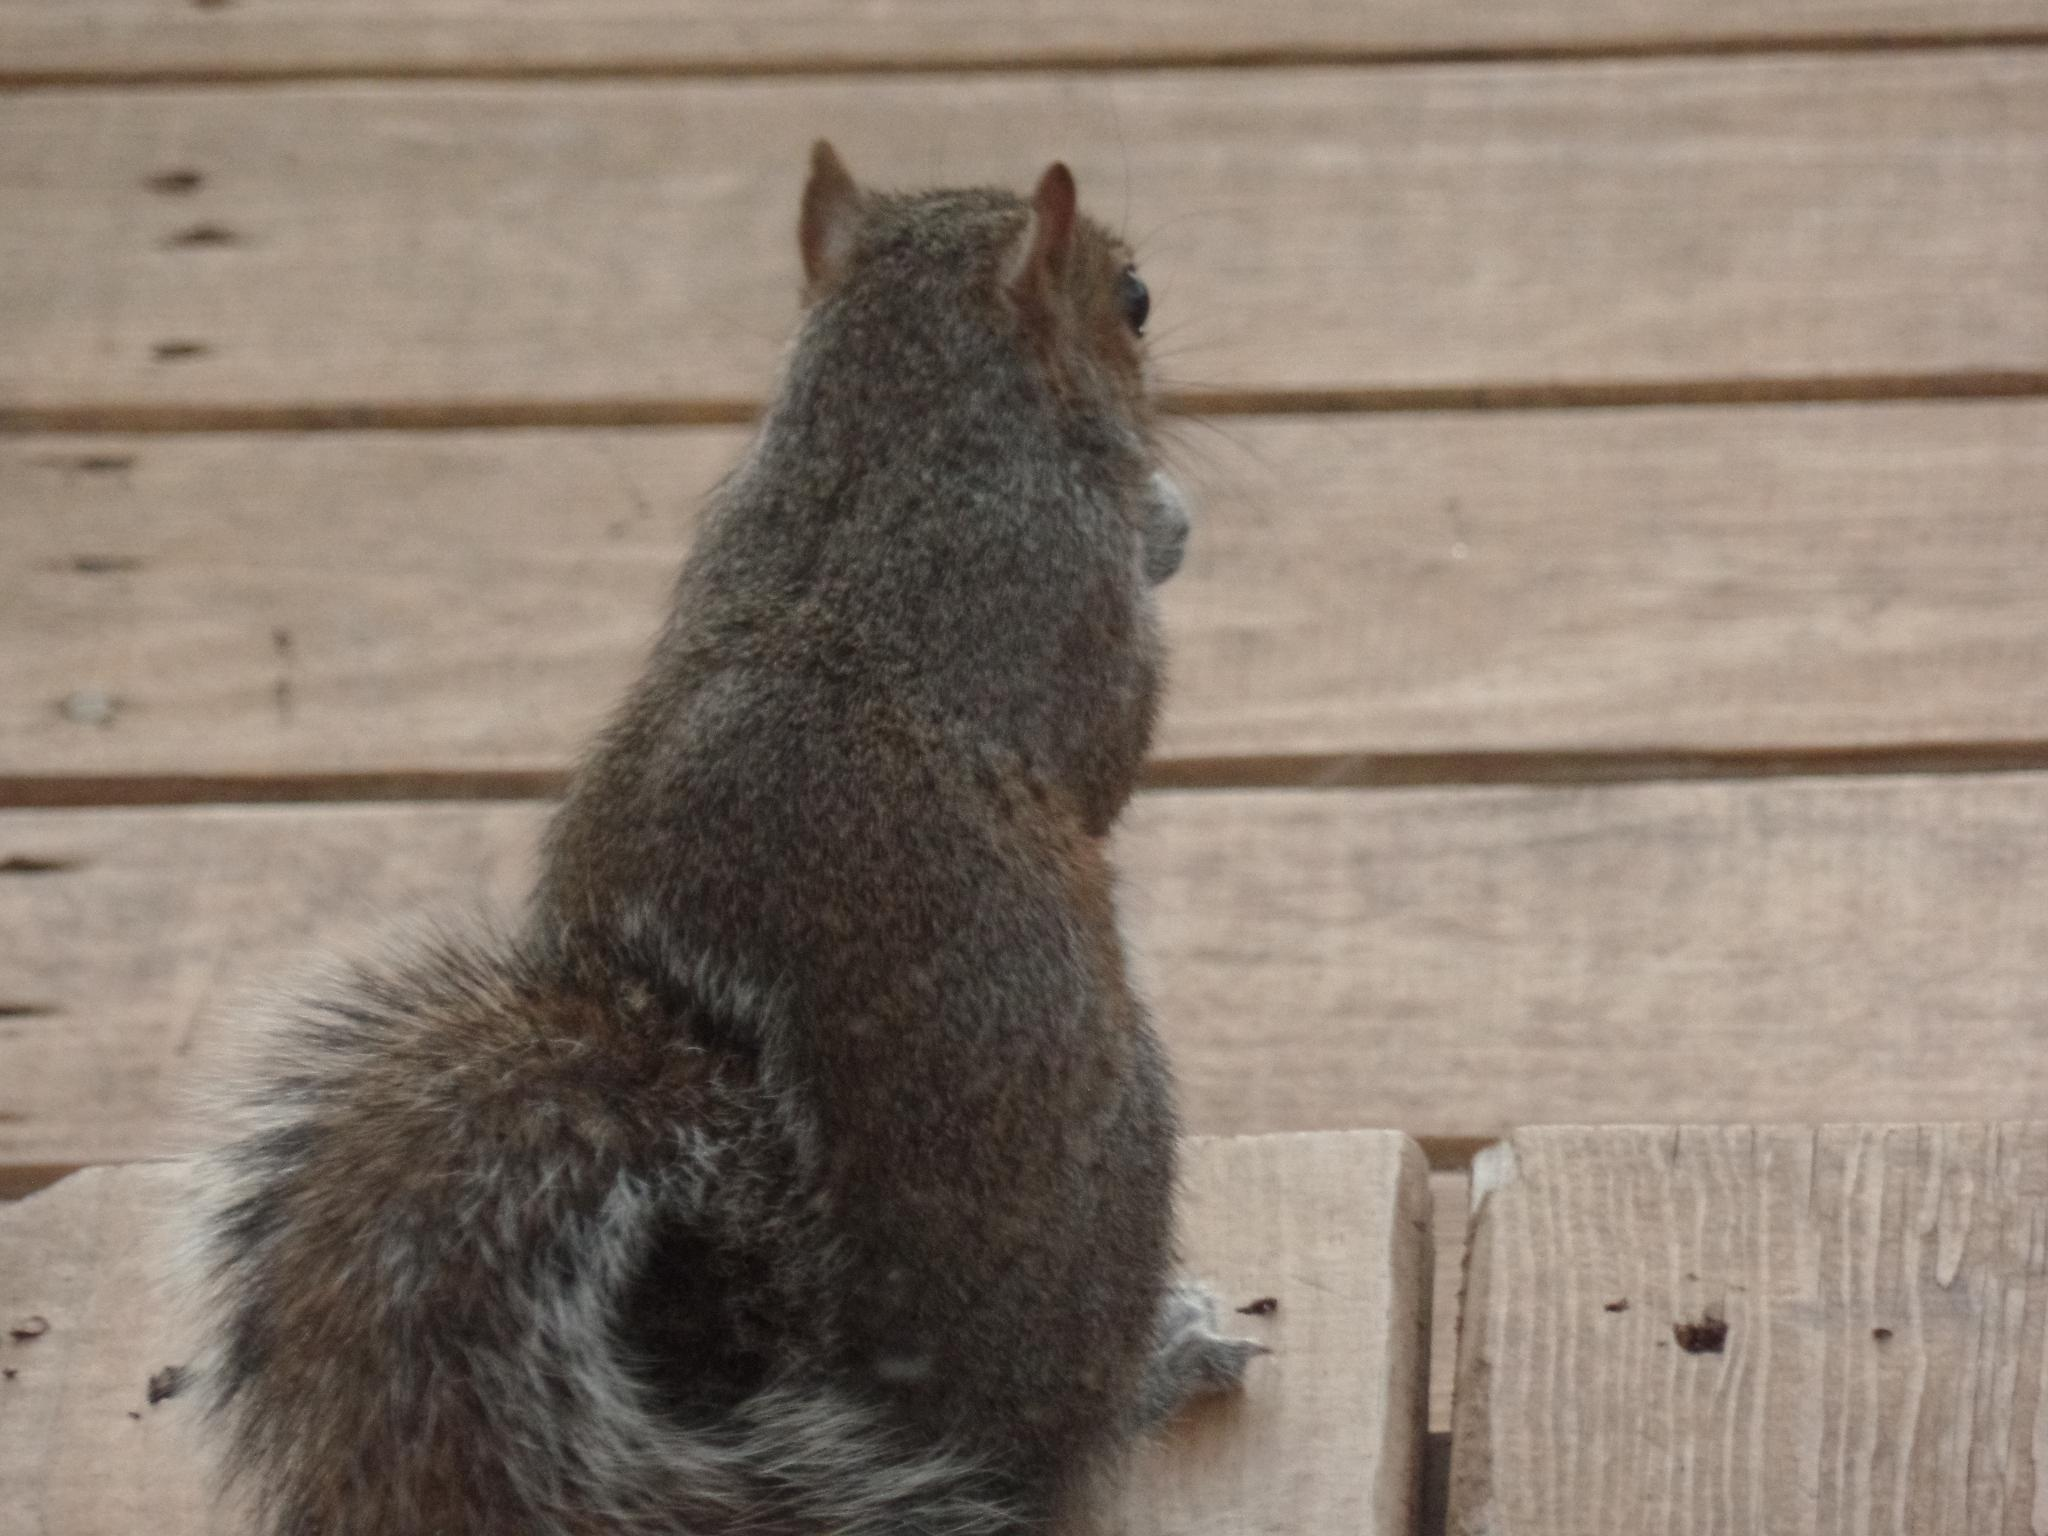 Squirrel on the porch by melinda